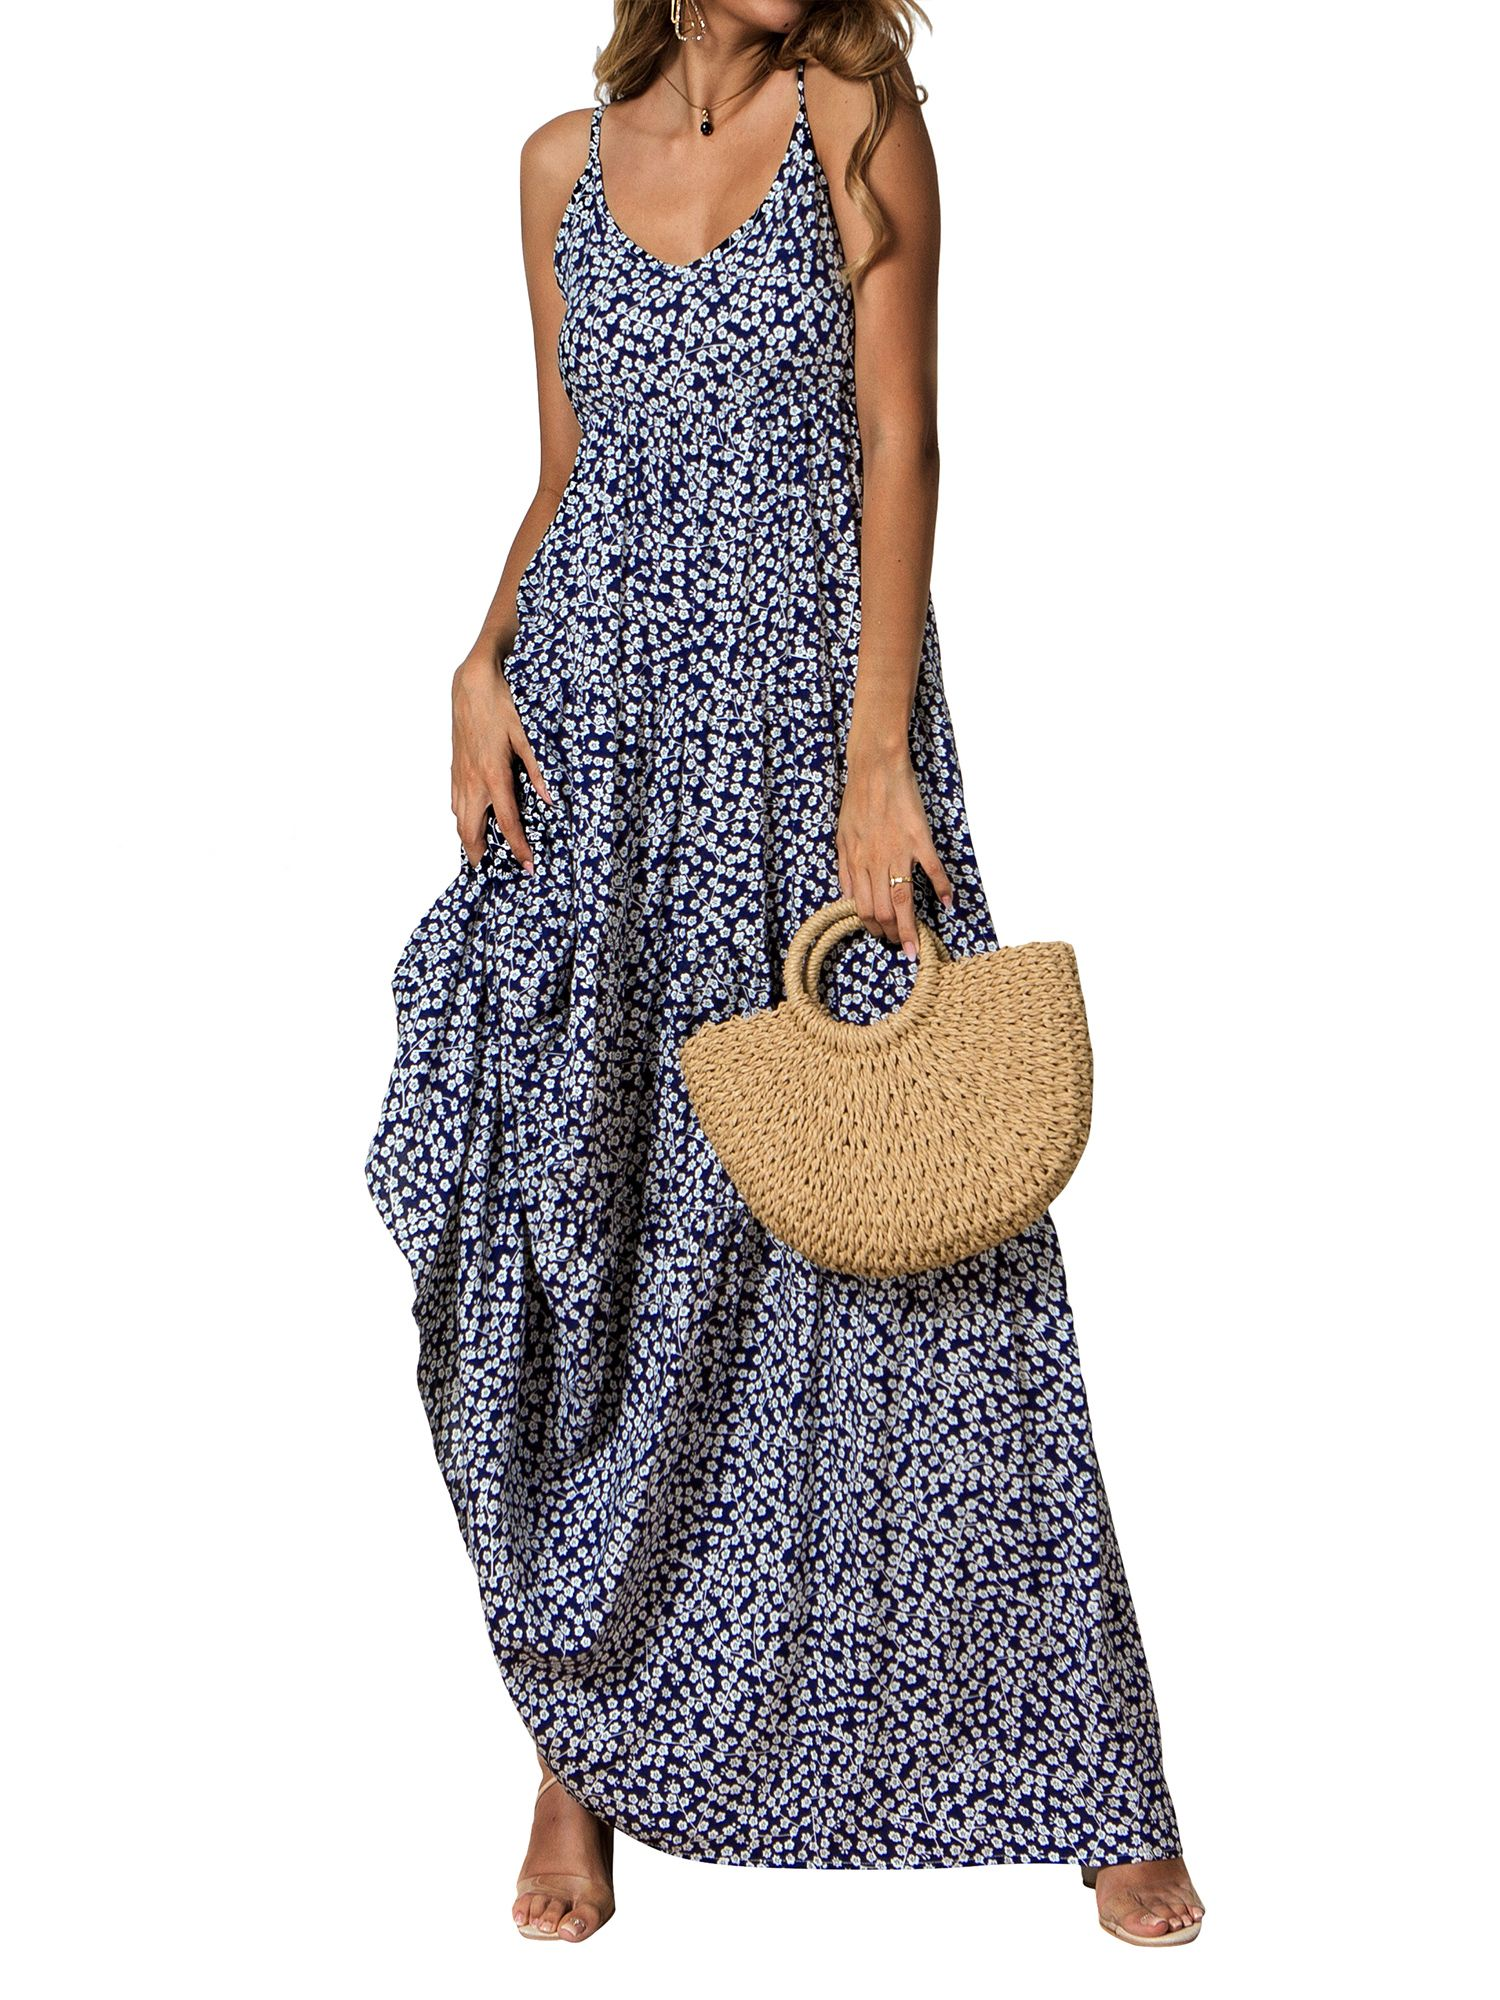 Picked Up From Walmart Free 2 Day Shipping Buy Beach Floral Print Long Maxi Dresses For Women Sleeveless S Womens Maxi Dresses Maxi Dress Women Long Dresses [ 2000 x 1500 Pixel ]